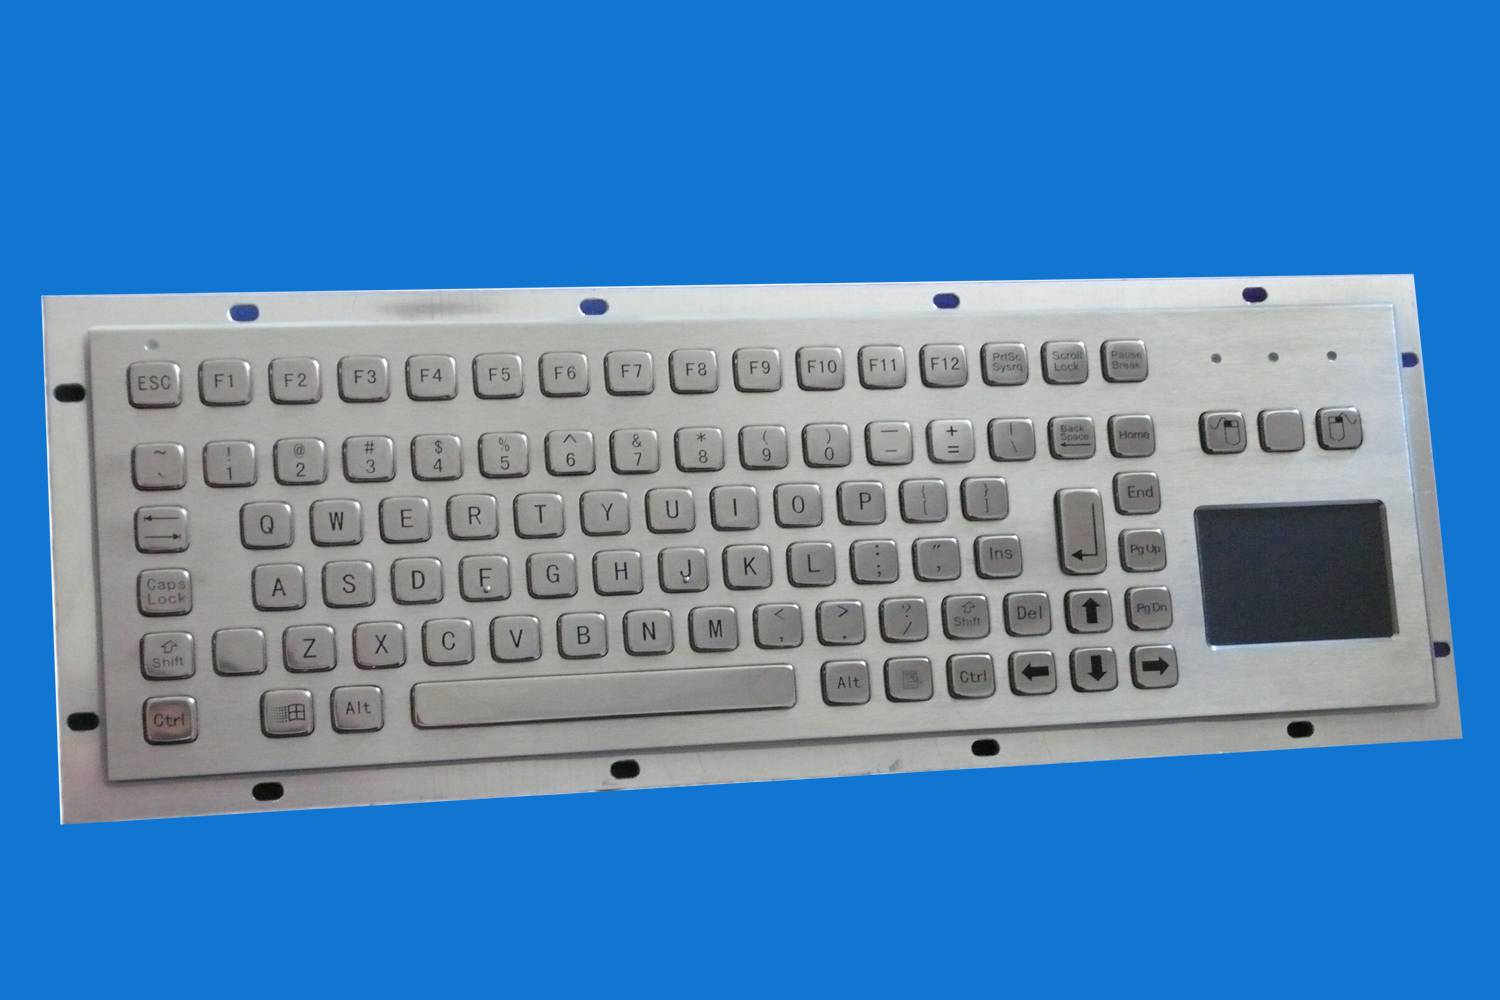 explosion proof computer keyboard, anti-explosion metal PC keyboard, intrinsically safe computer key